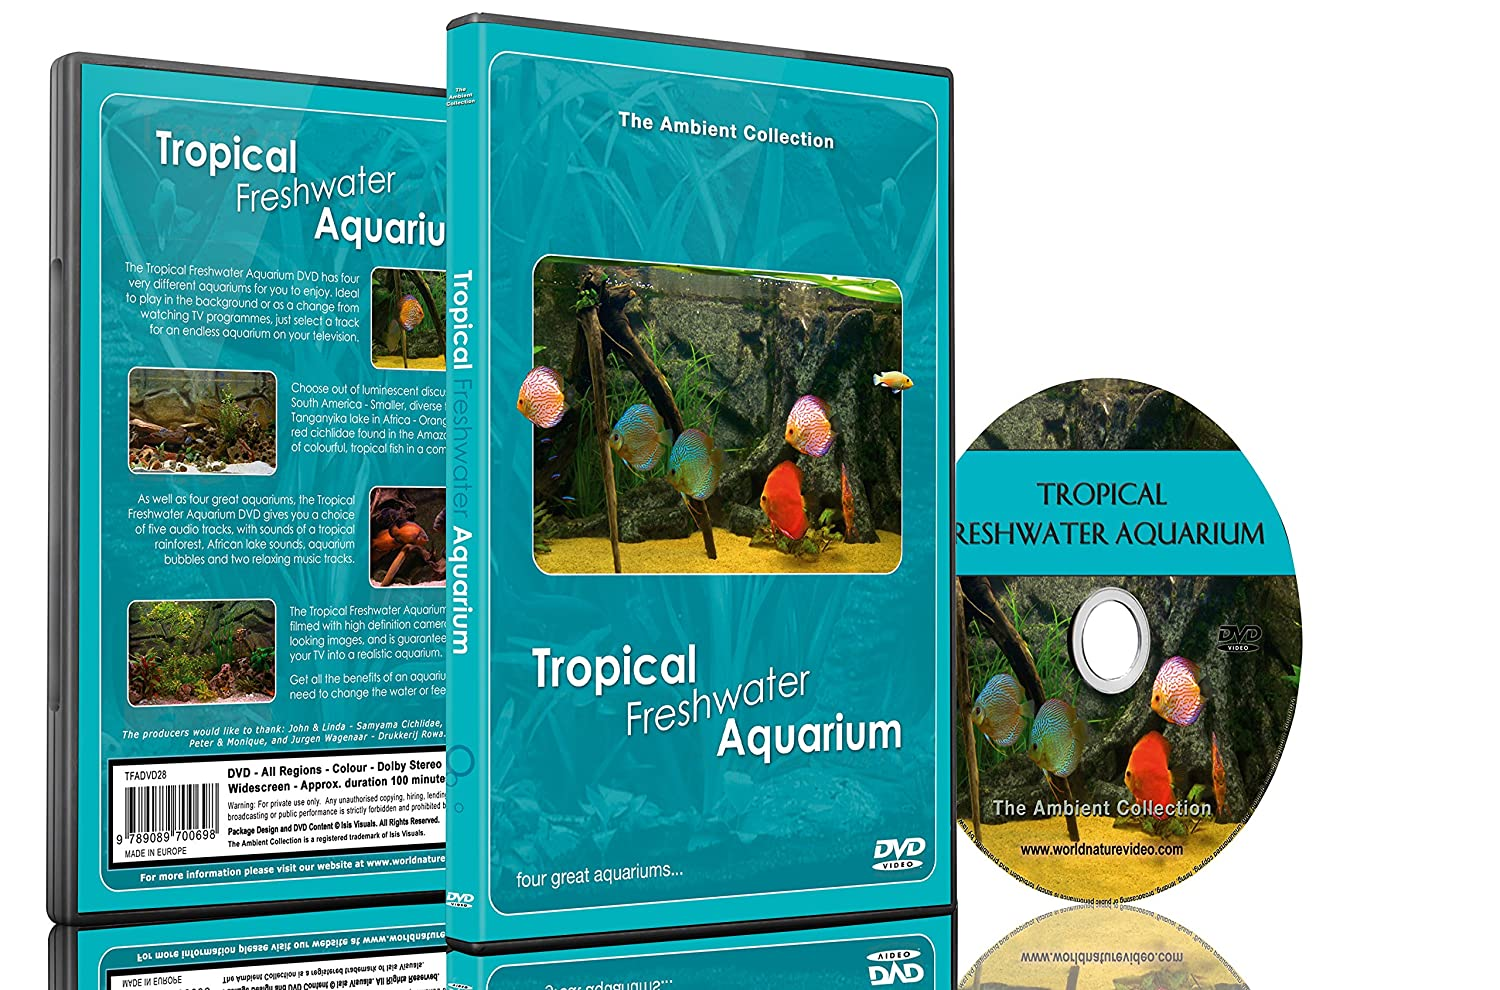 DVD de acuario - Acuarios tropicales de agua dulce - 100 minutos de HD Fishtanks con música y sonidos de la naturaleza: Amazon.es: The Ambient Collection, ...